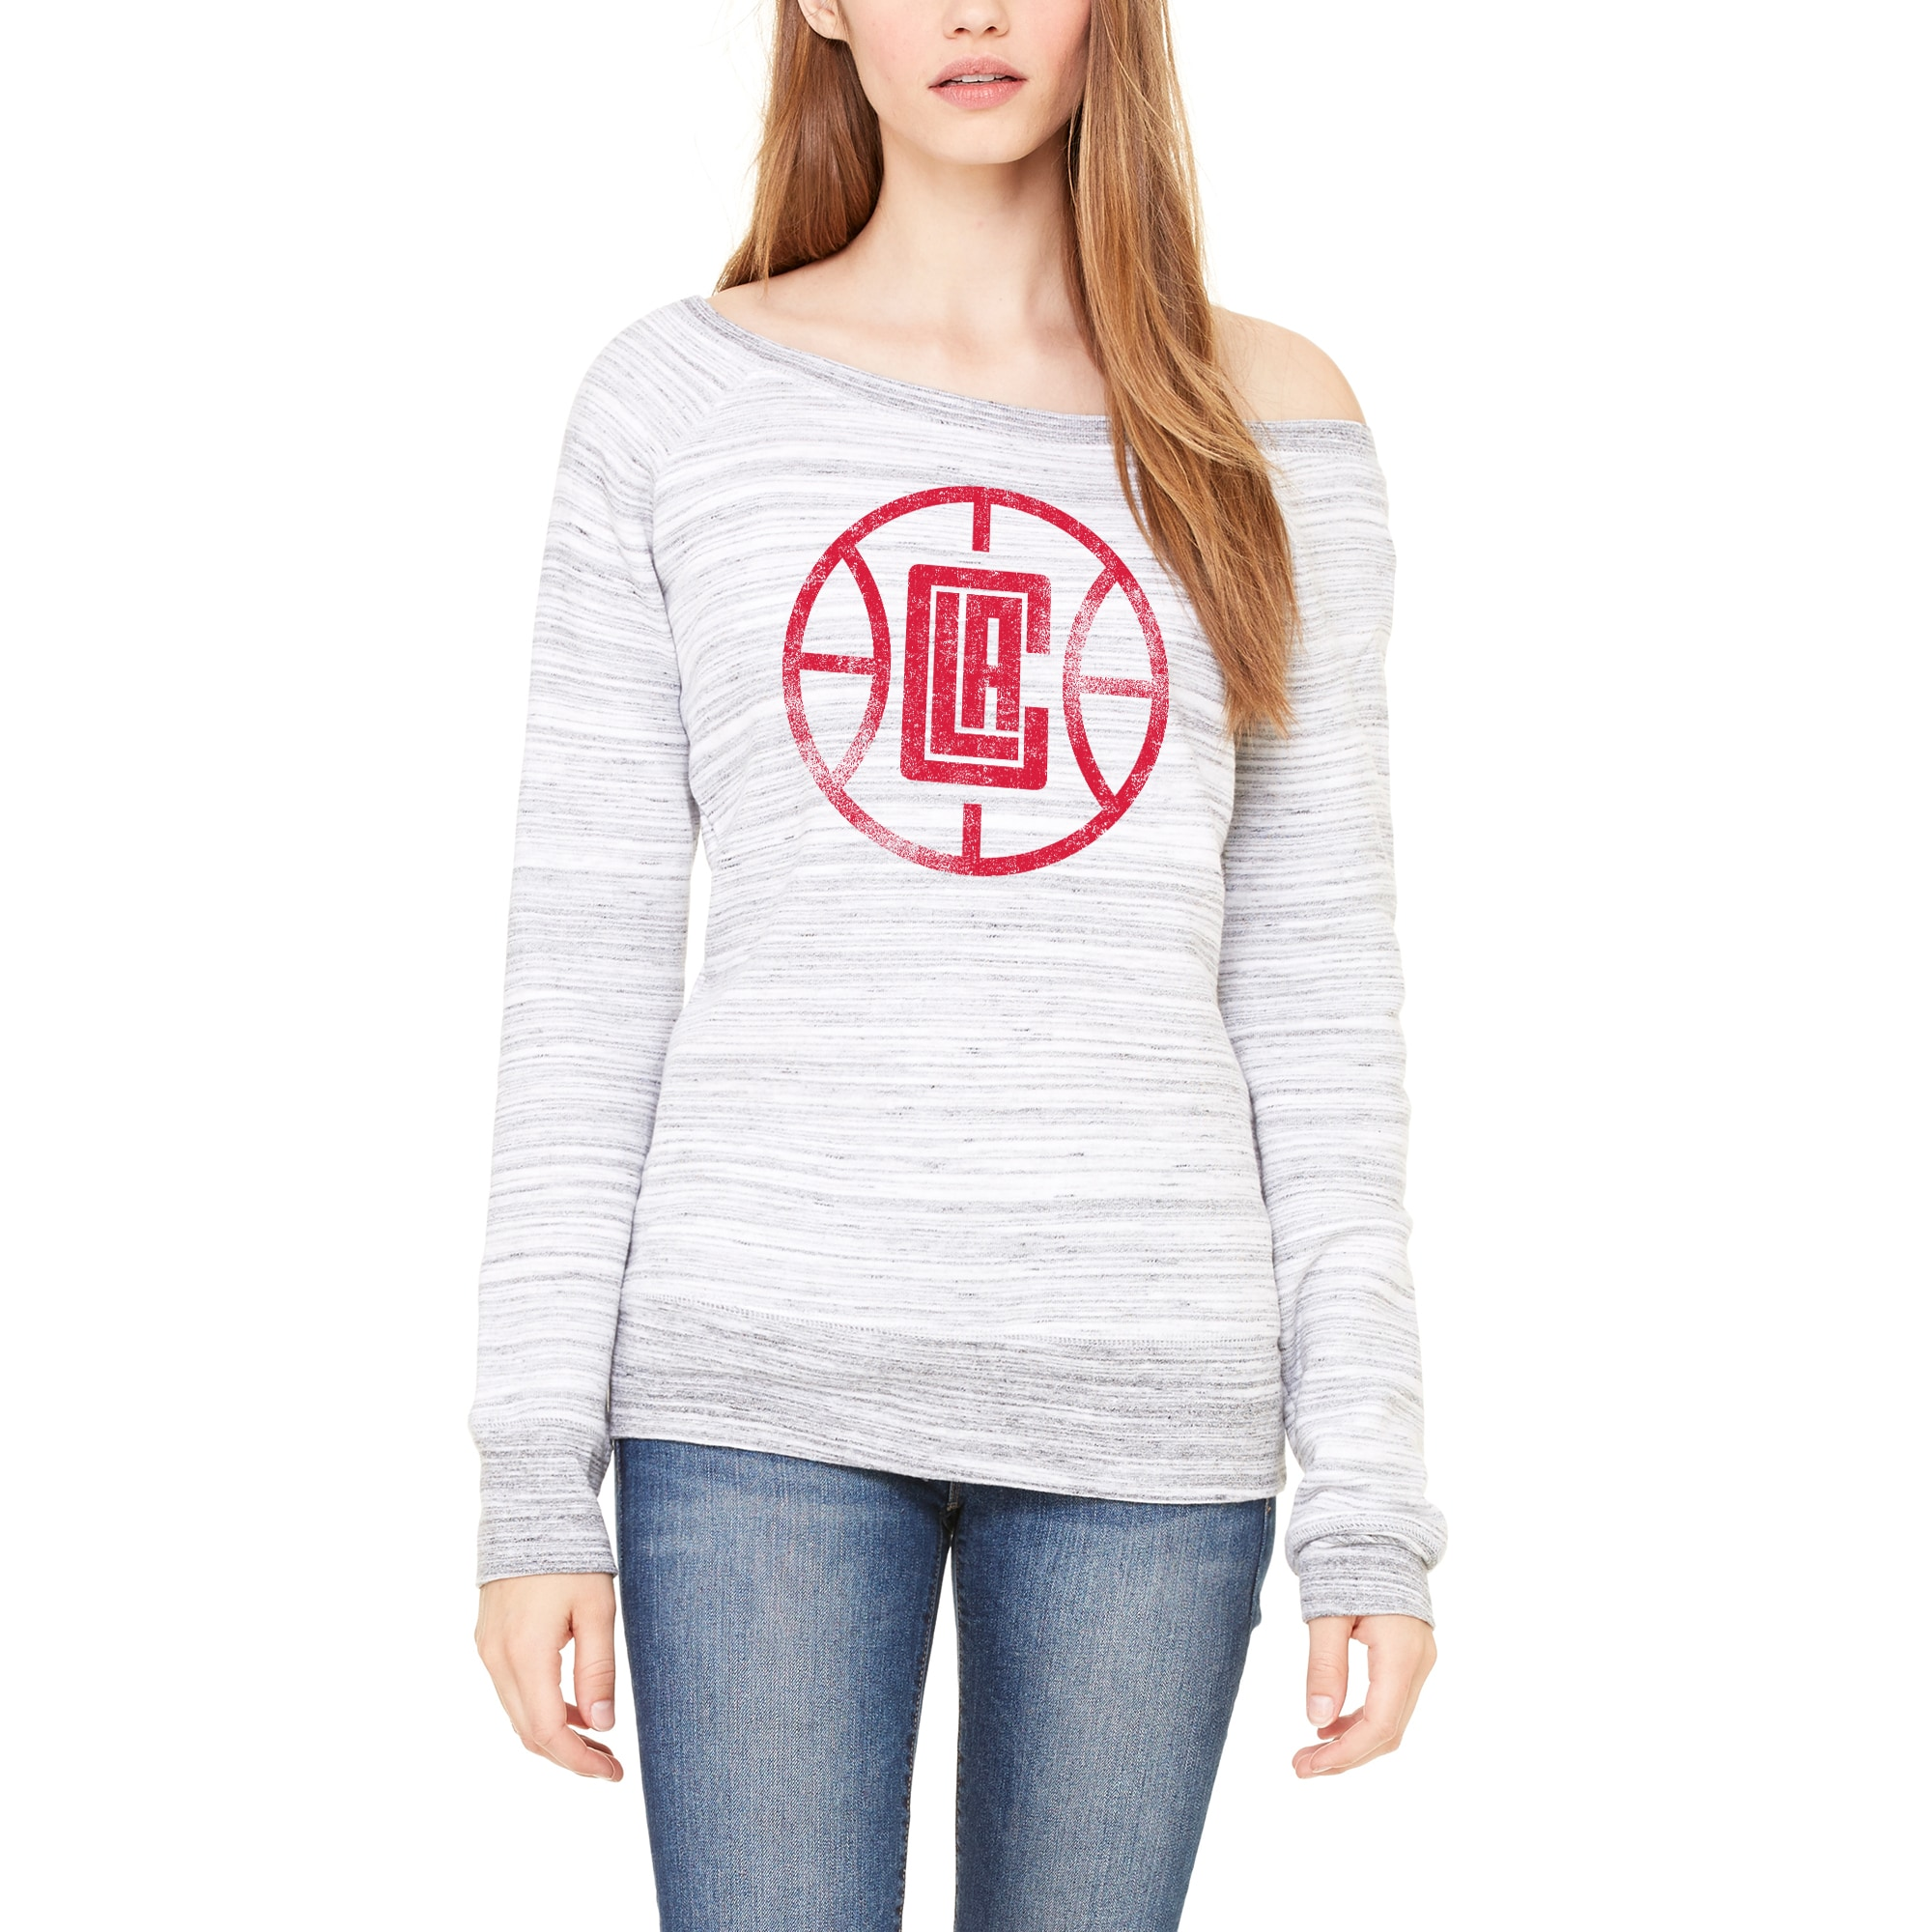 LA Clippers Let Loose by RNL Women's Game Day Wide Neck Sweatshirt - Ash